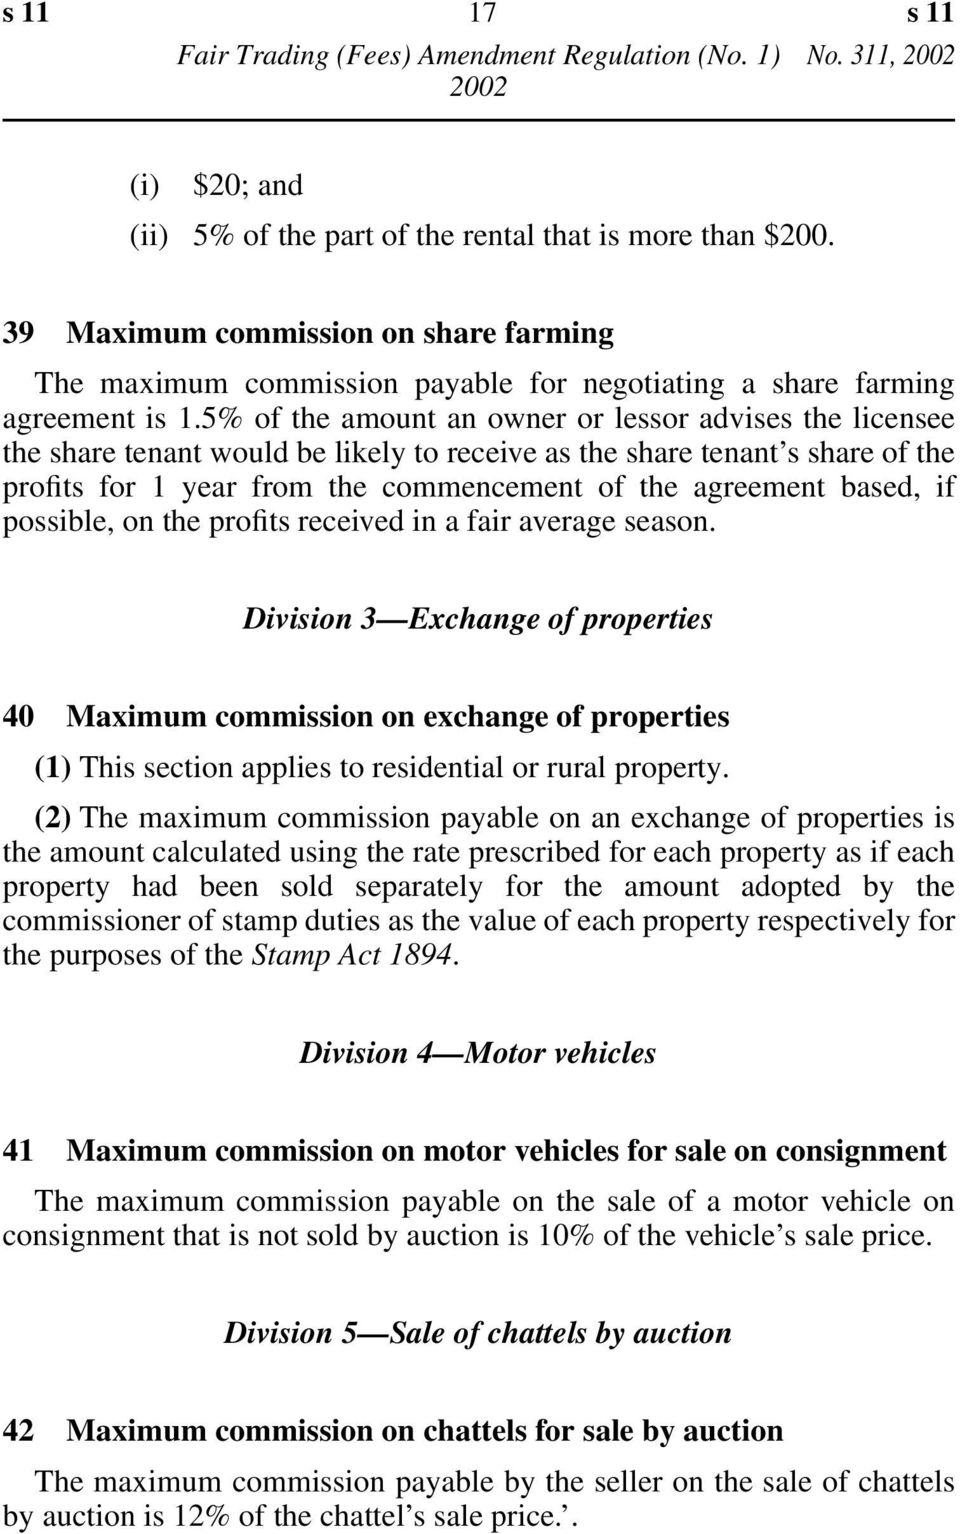 5% of the amount an owner or lessor advises the licensee the share tenant would be likely to receive as the share tenant s share of the profits for 1 year from the commencement of the agreement